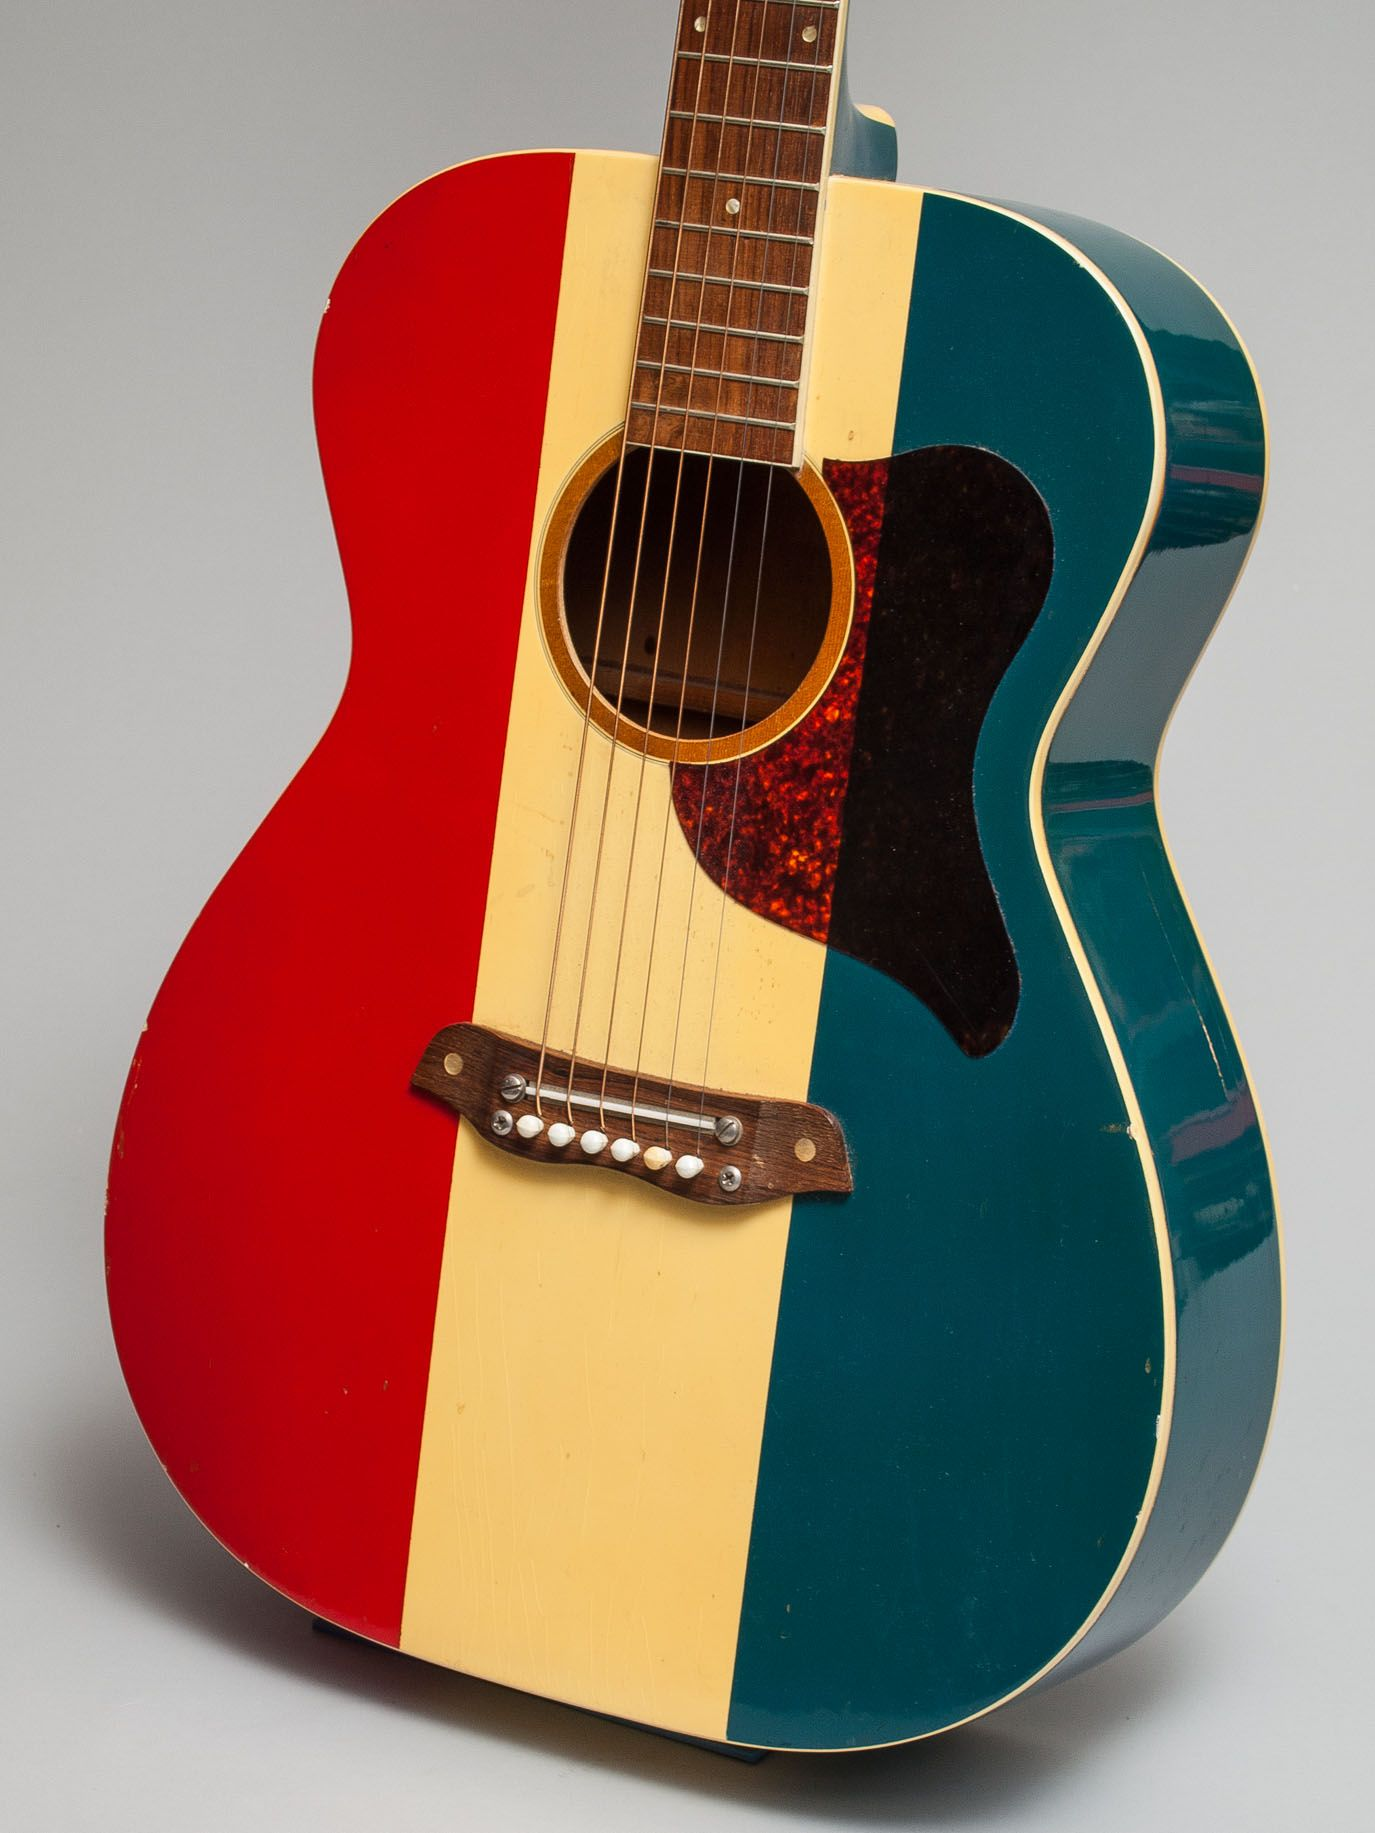 It Doesnt Get More Patriotic Than A Red White And Blue Guitar With Buck Owens Name On The Headstock